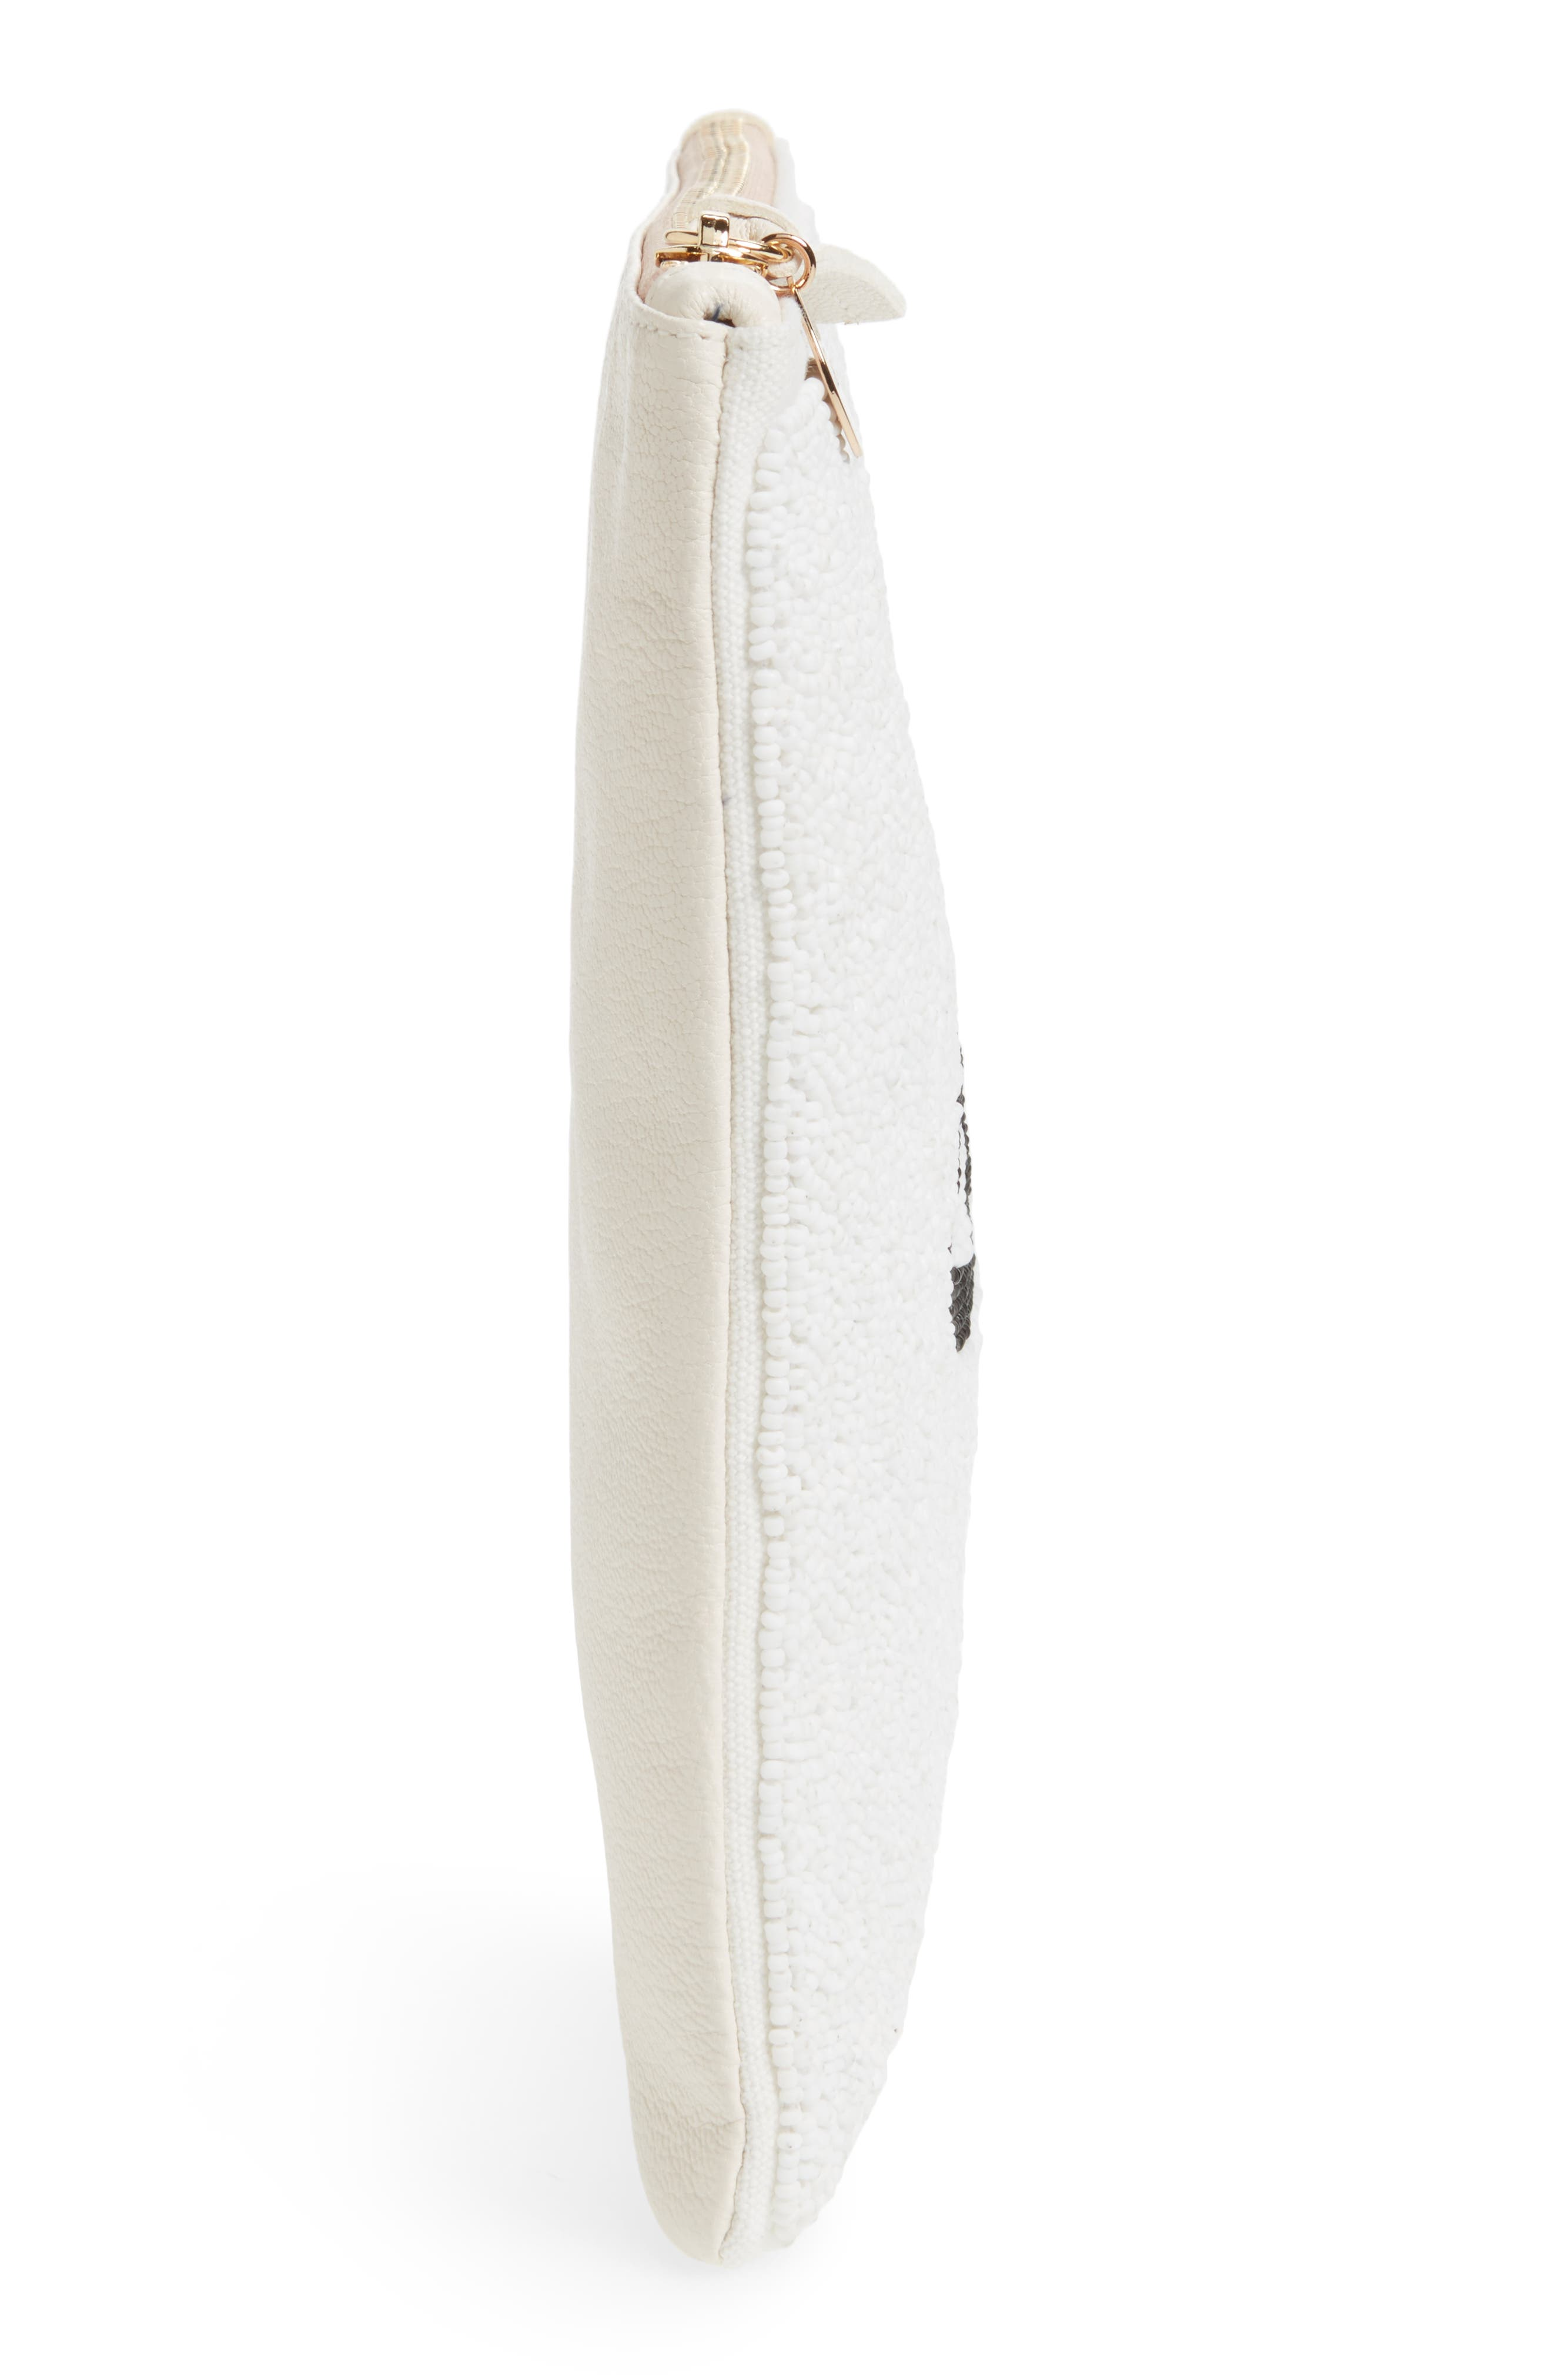 Eyes Printed Nappa Leather Clutch,                             Alternate thumbnail 5, color,                             Beaded White With Black Eyes